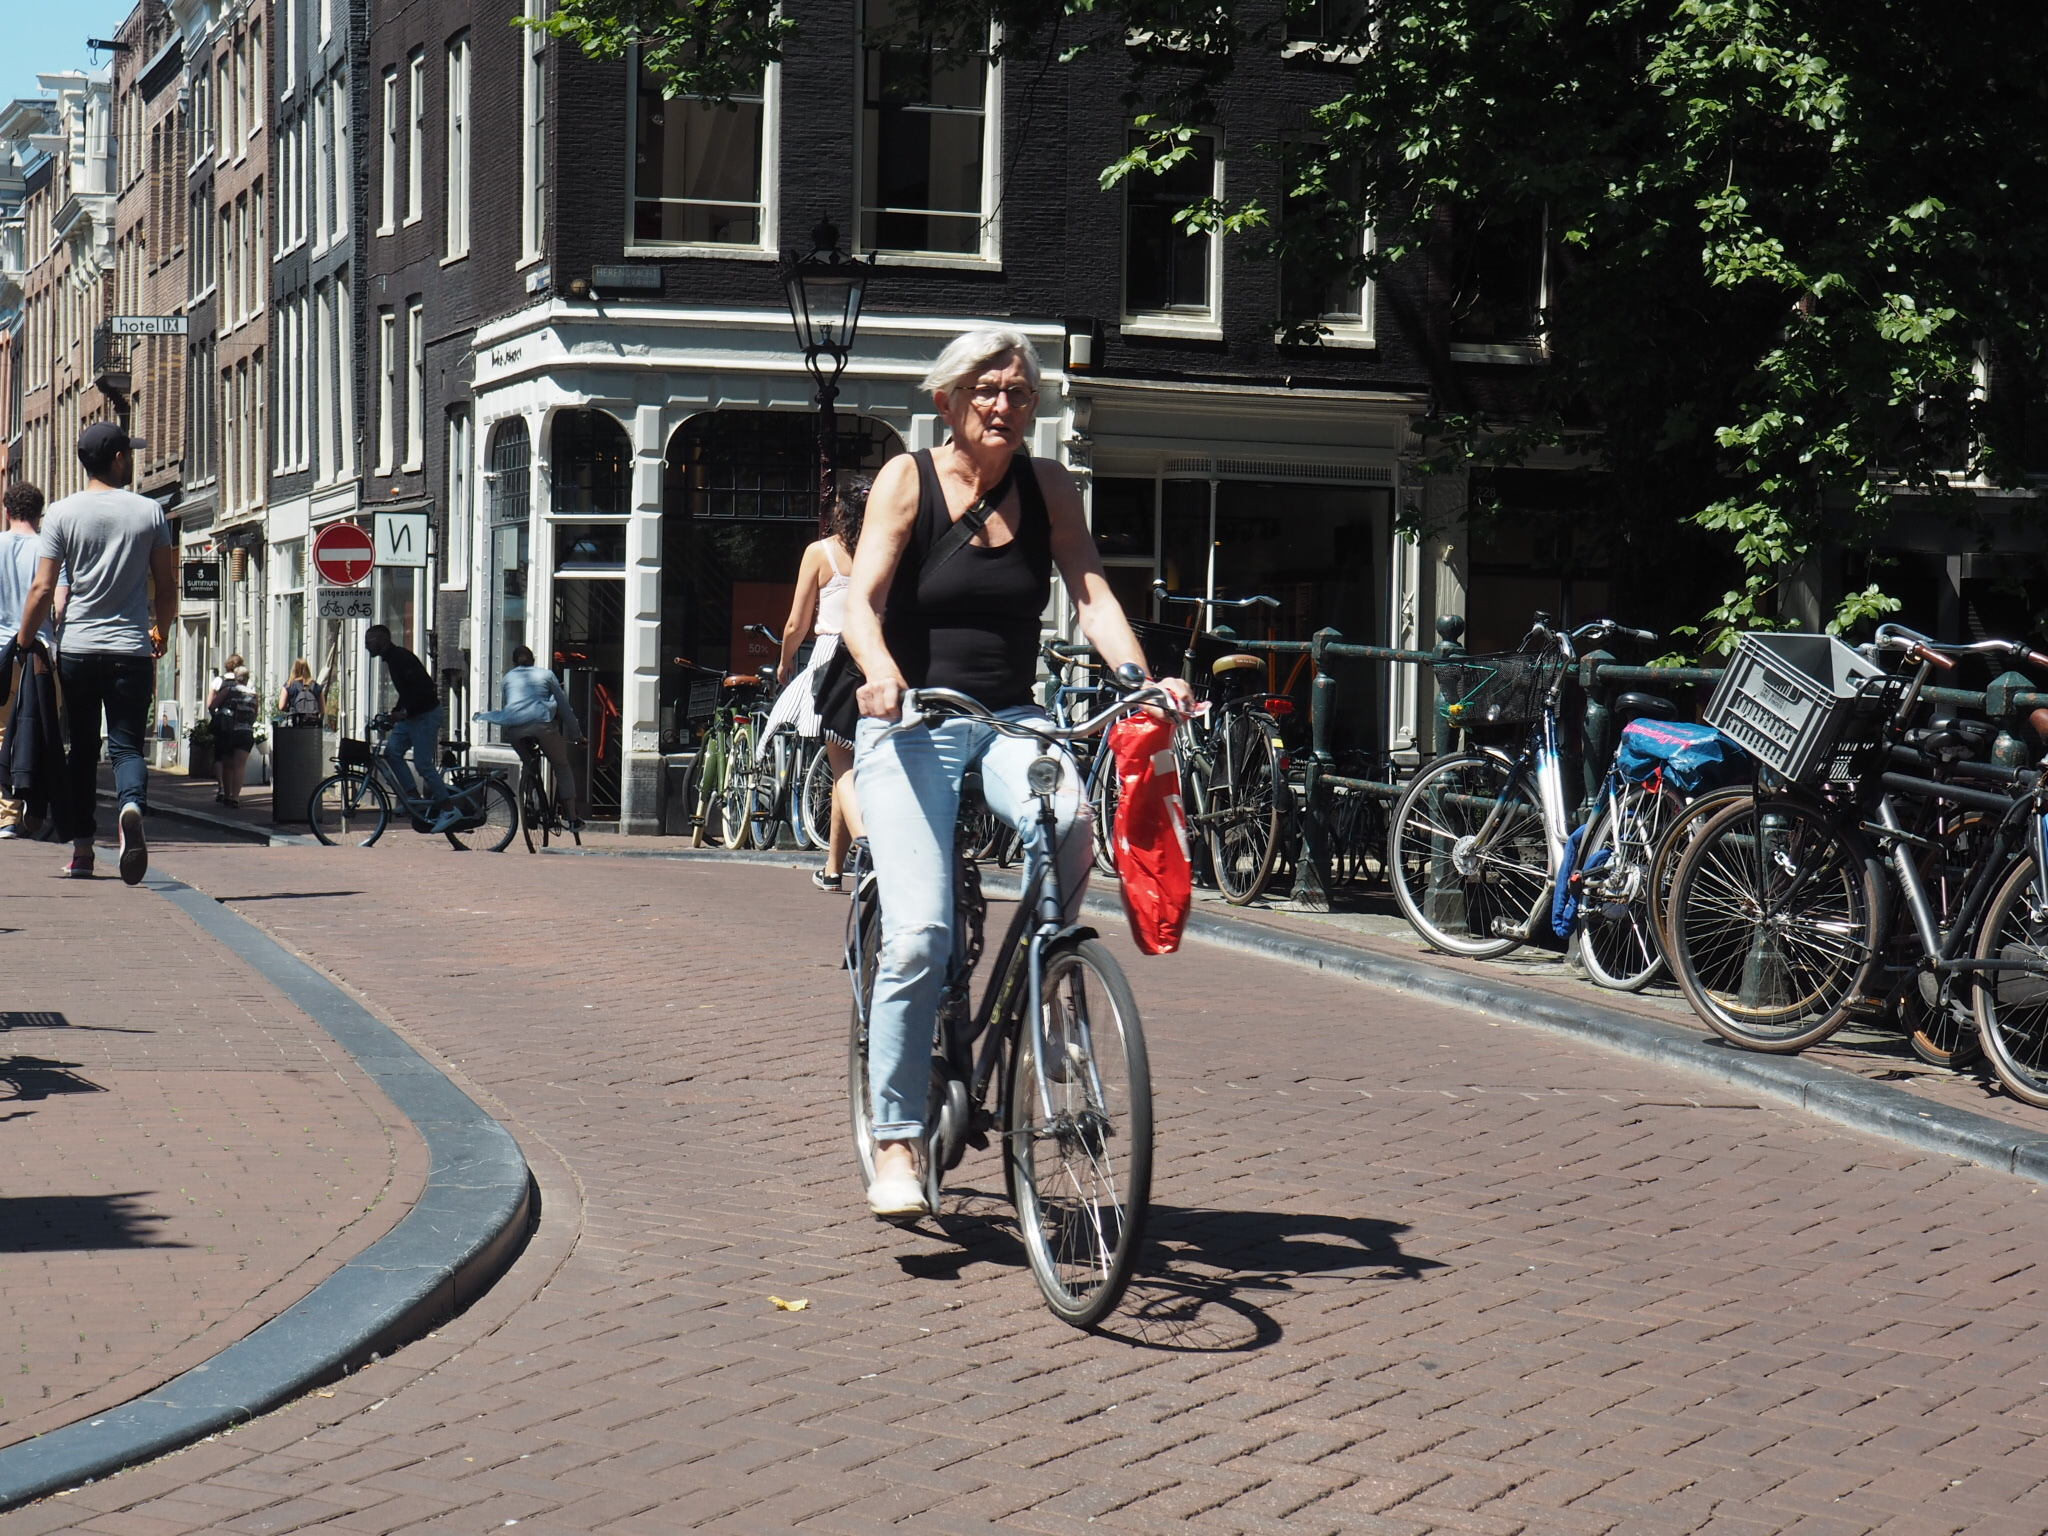 Cyclists in Amsterdam